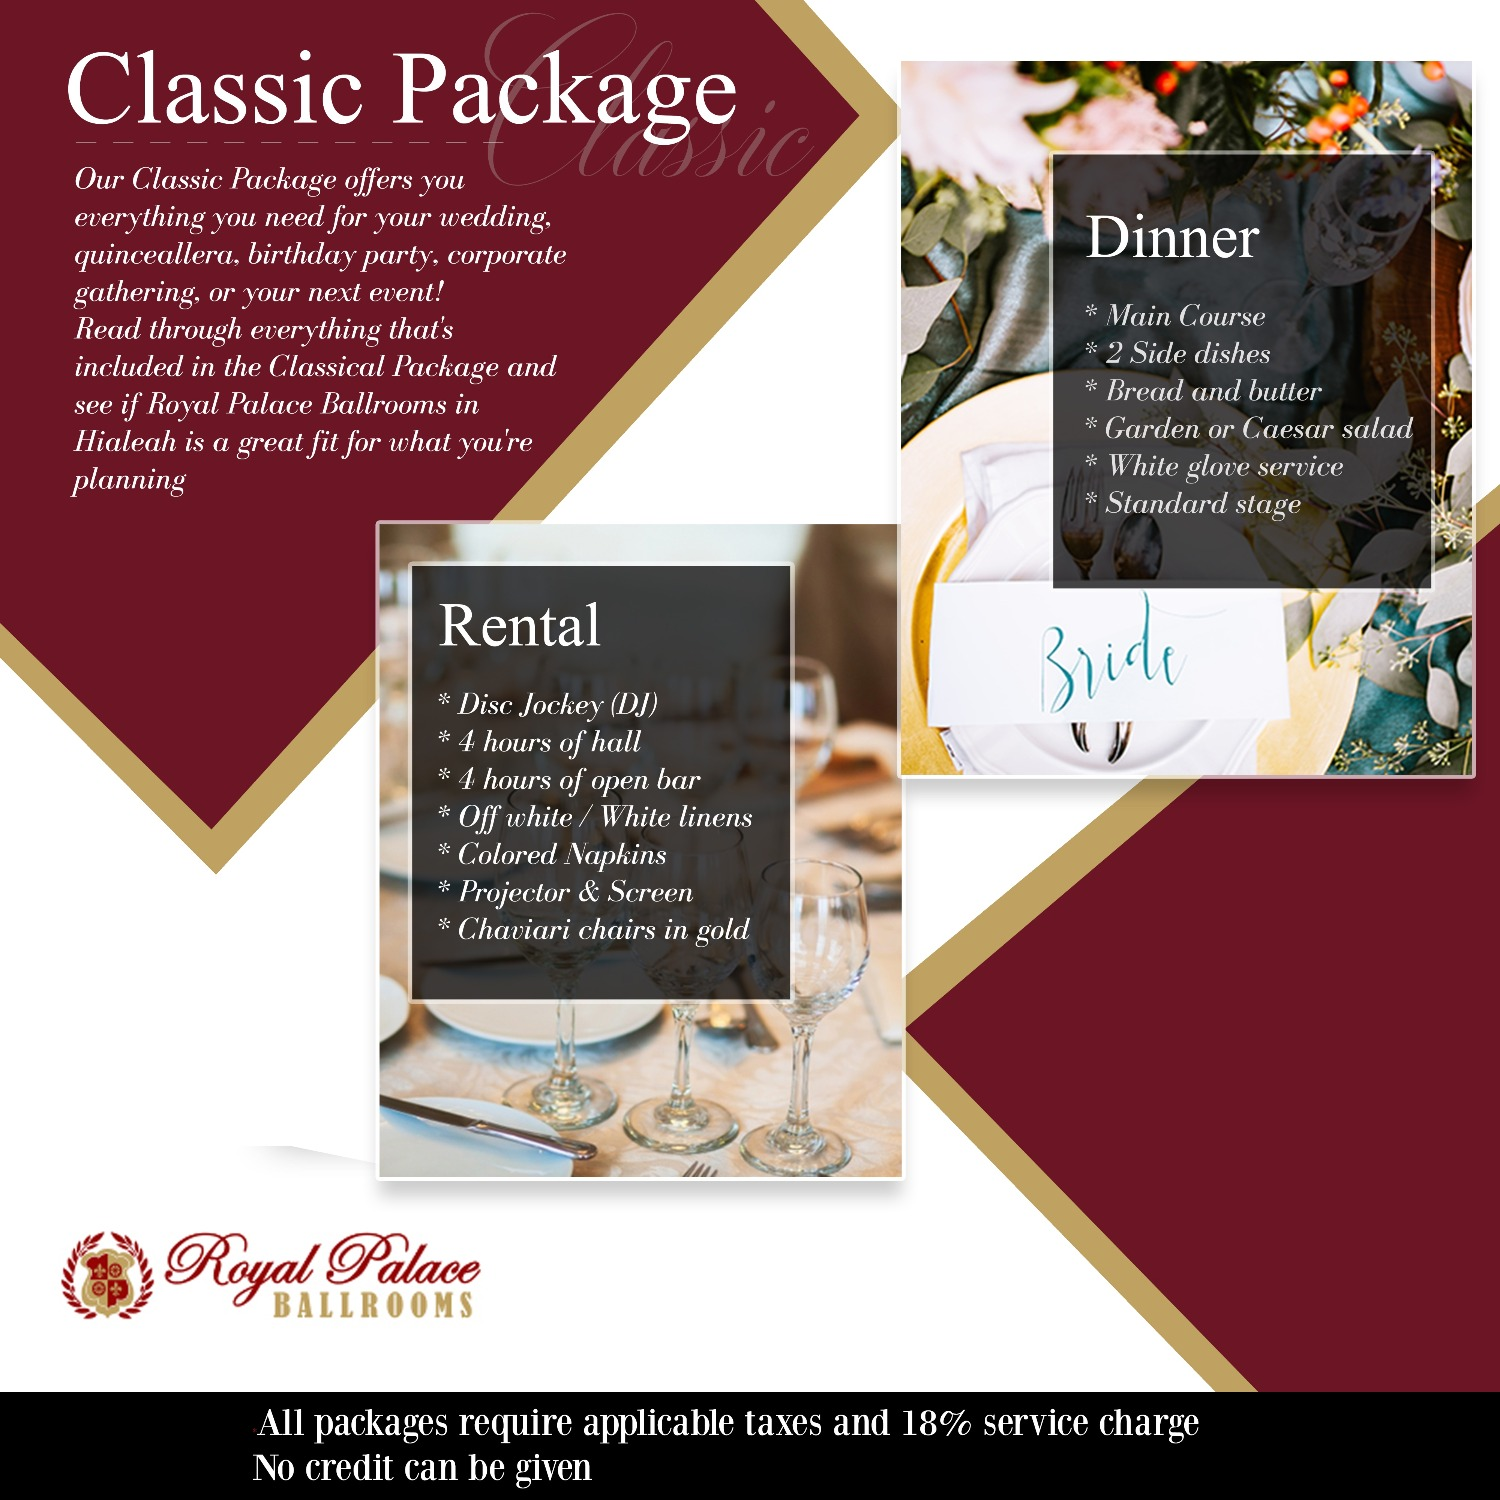 Classic Package Royal Palace Ballrooms